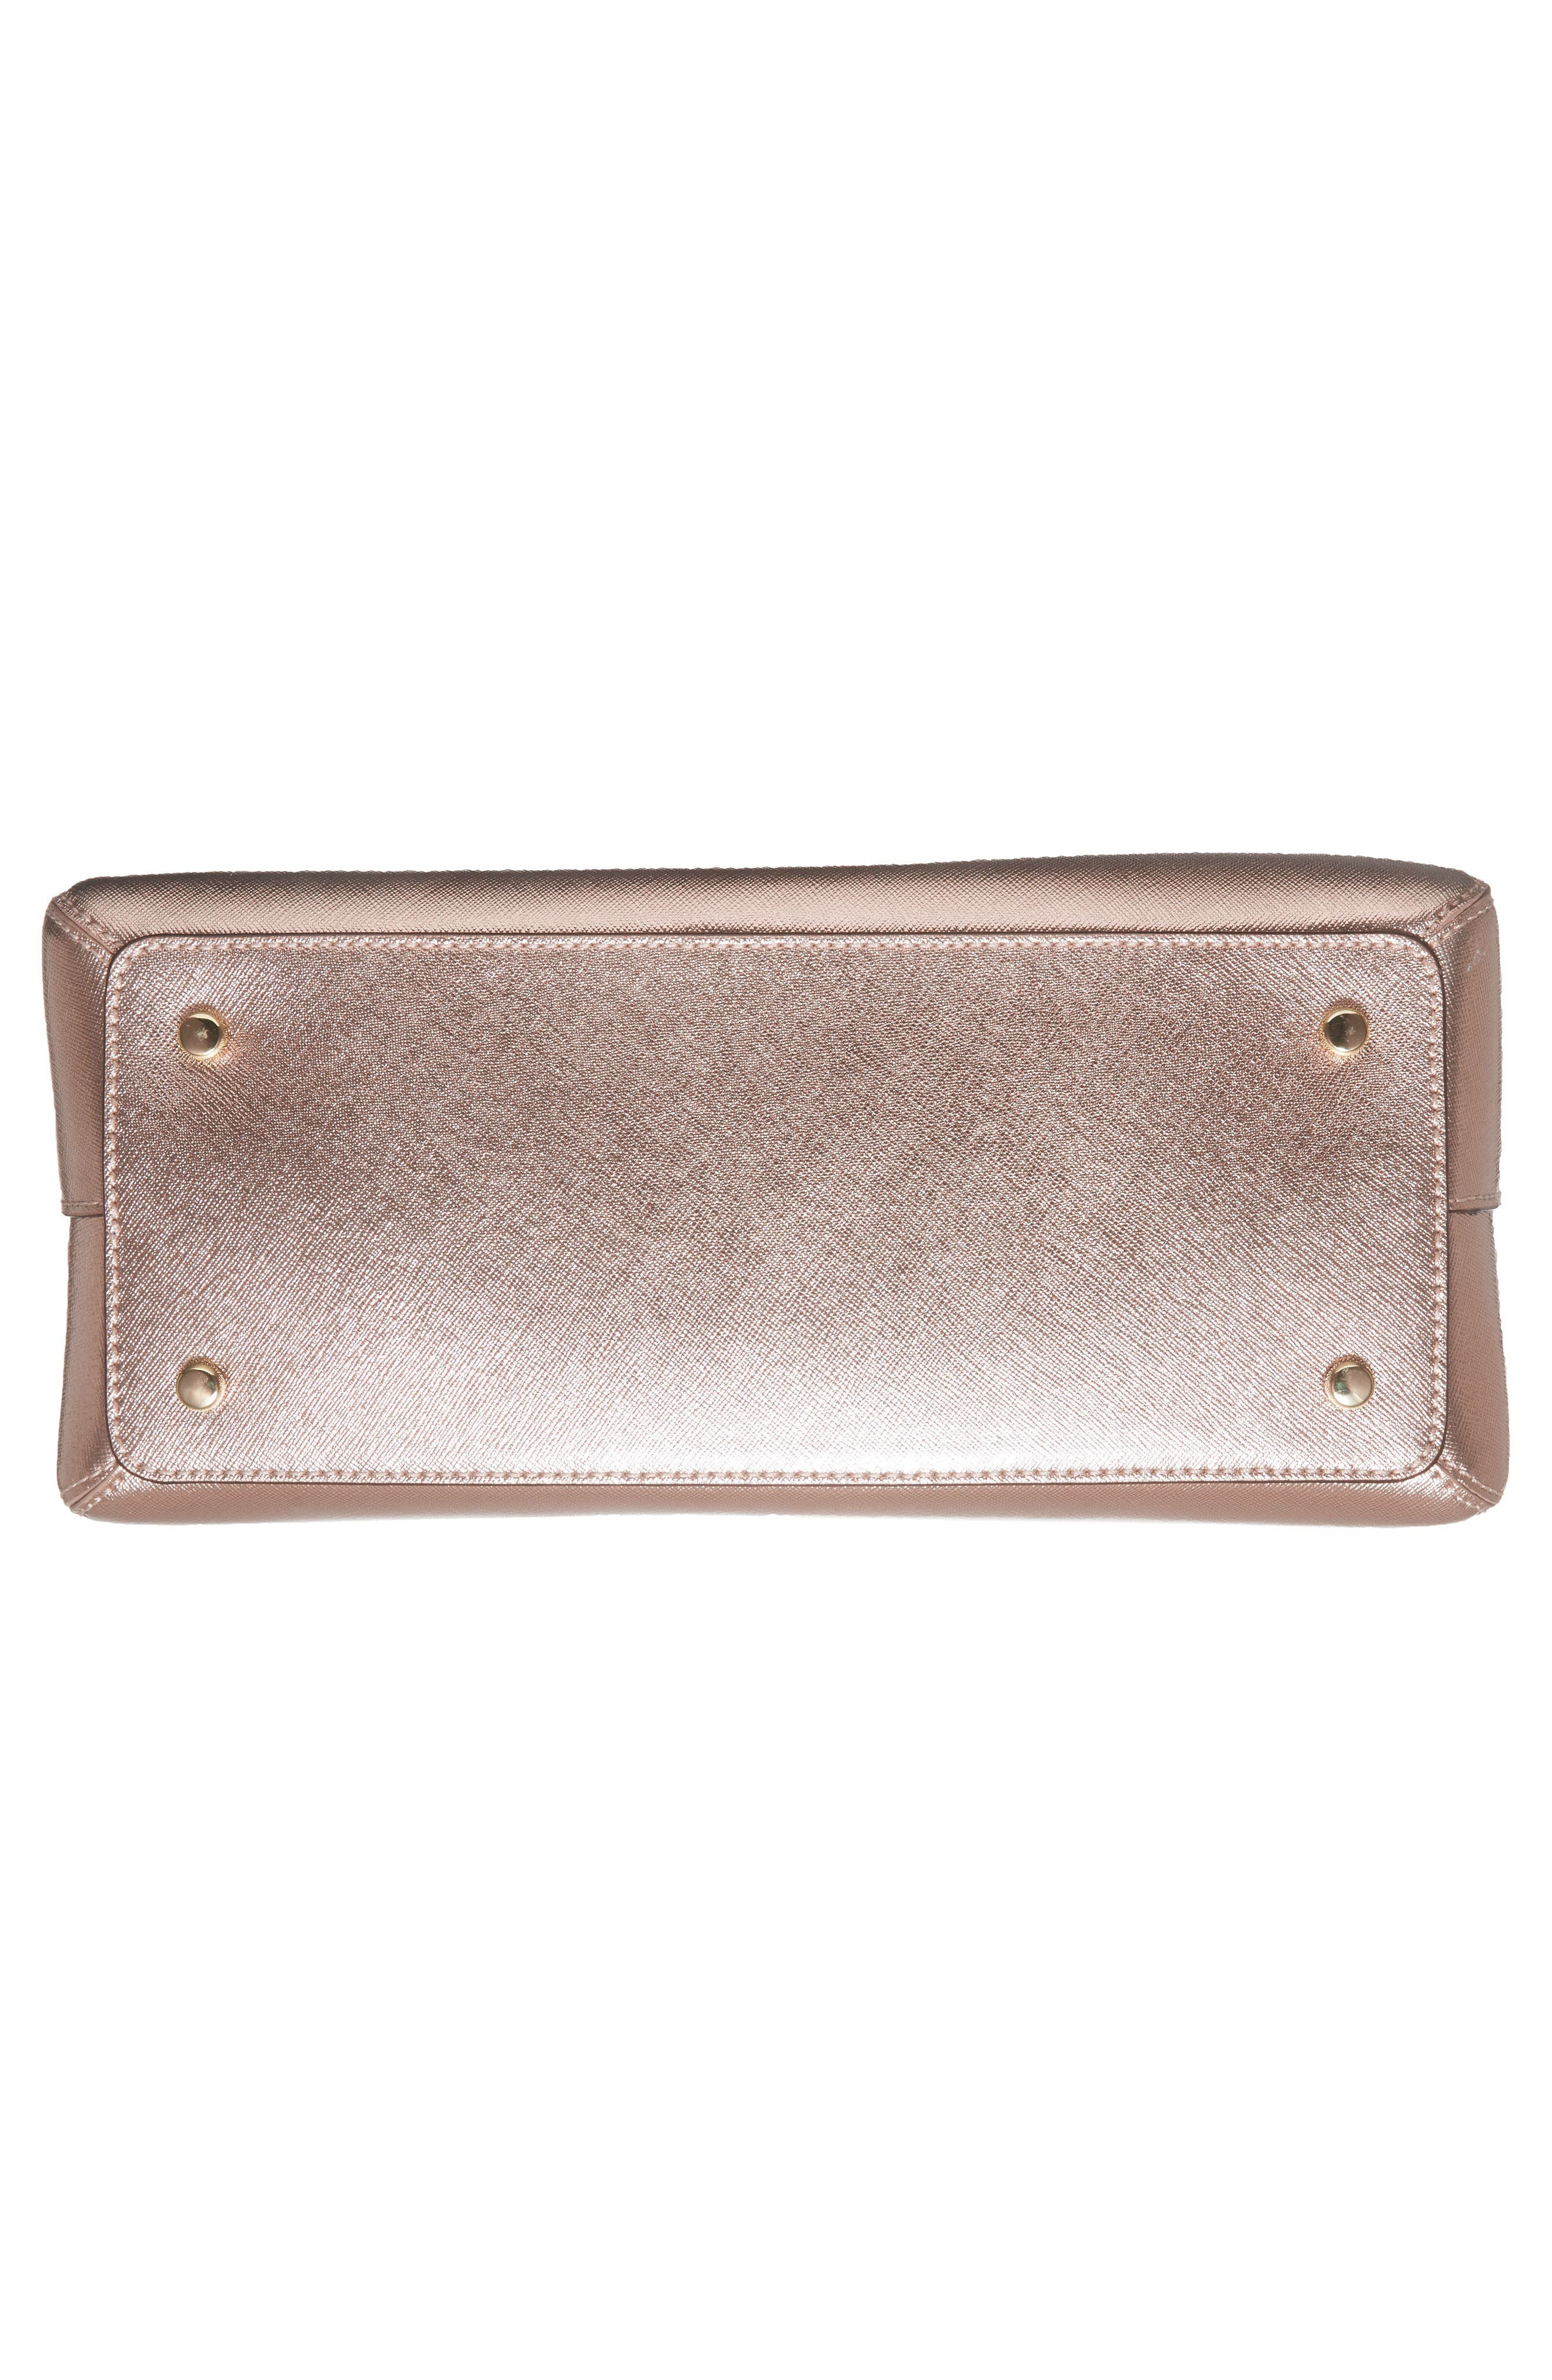 cameron street - lottie leather satchel,                             Alternate thumbnail 6, color,                             Rose Gold